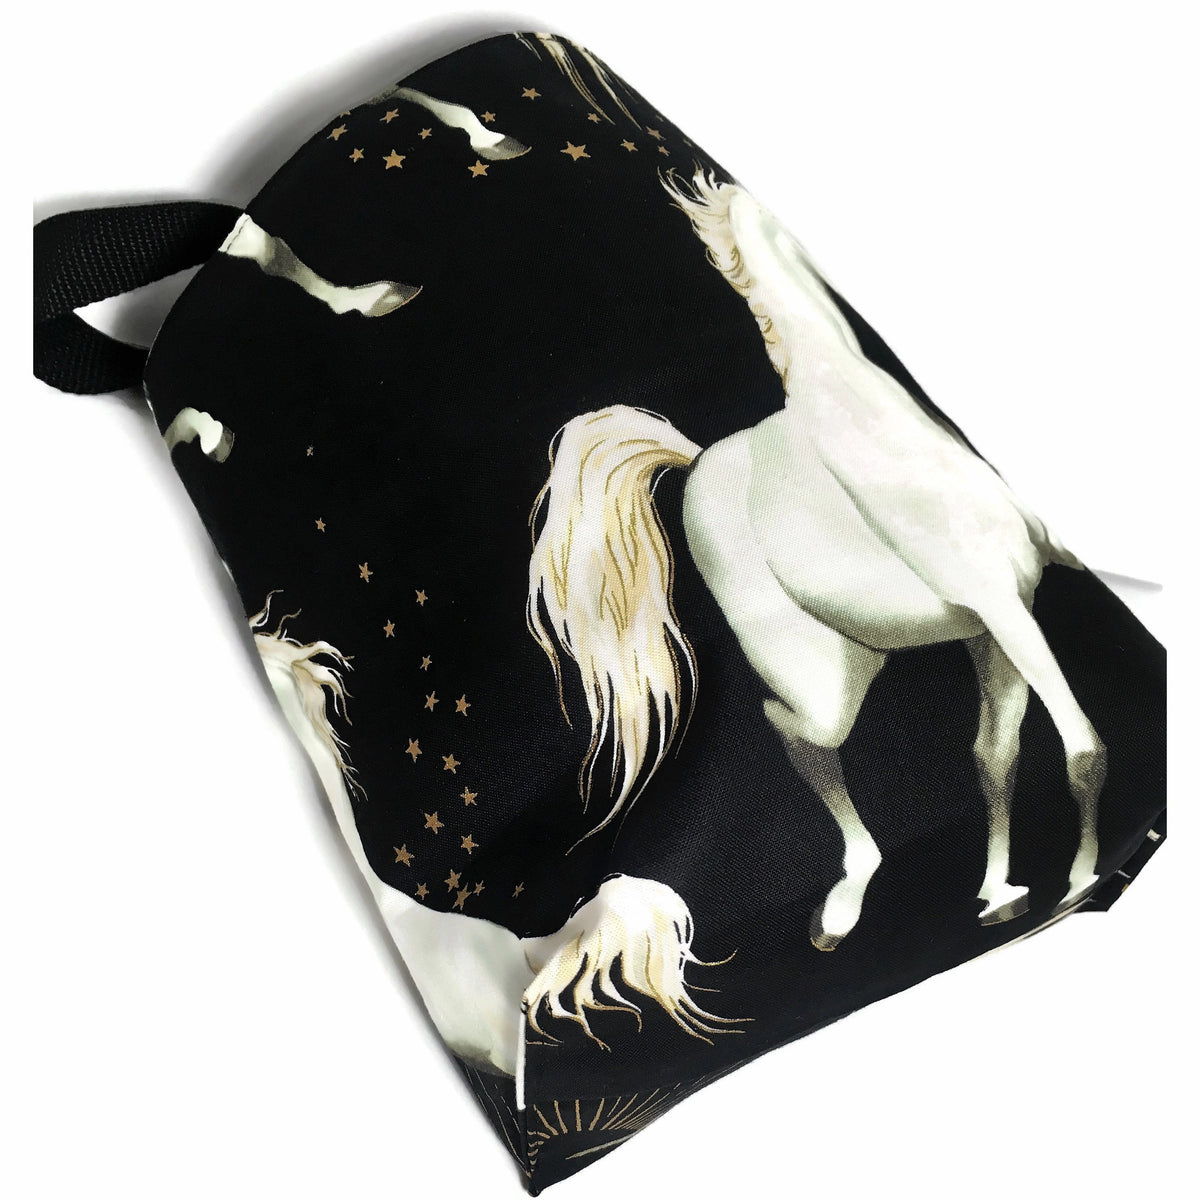 Unicorn Car Trash Bag - Lined Garbage for Cars - Wipe Clean Lining - Soft Bag - Car Acccessory